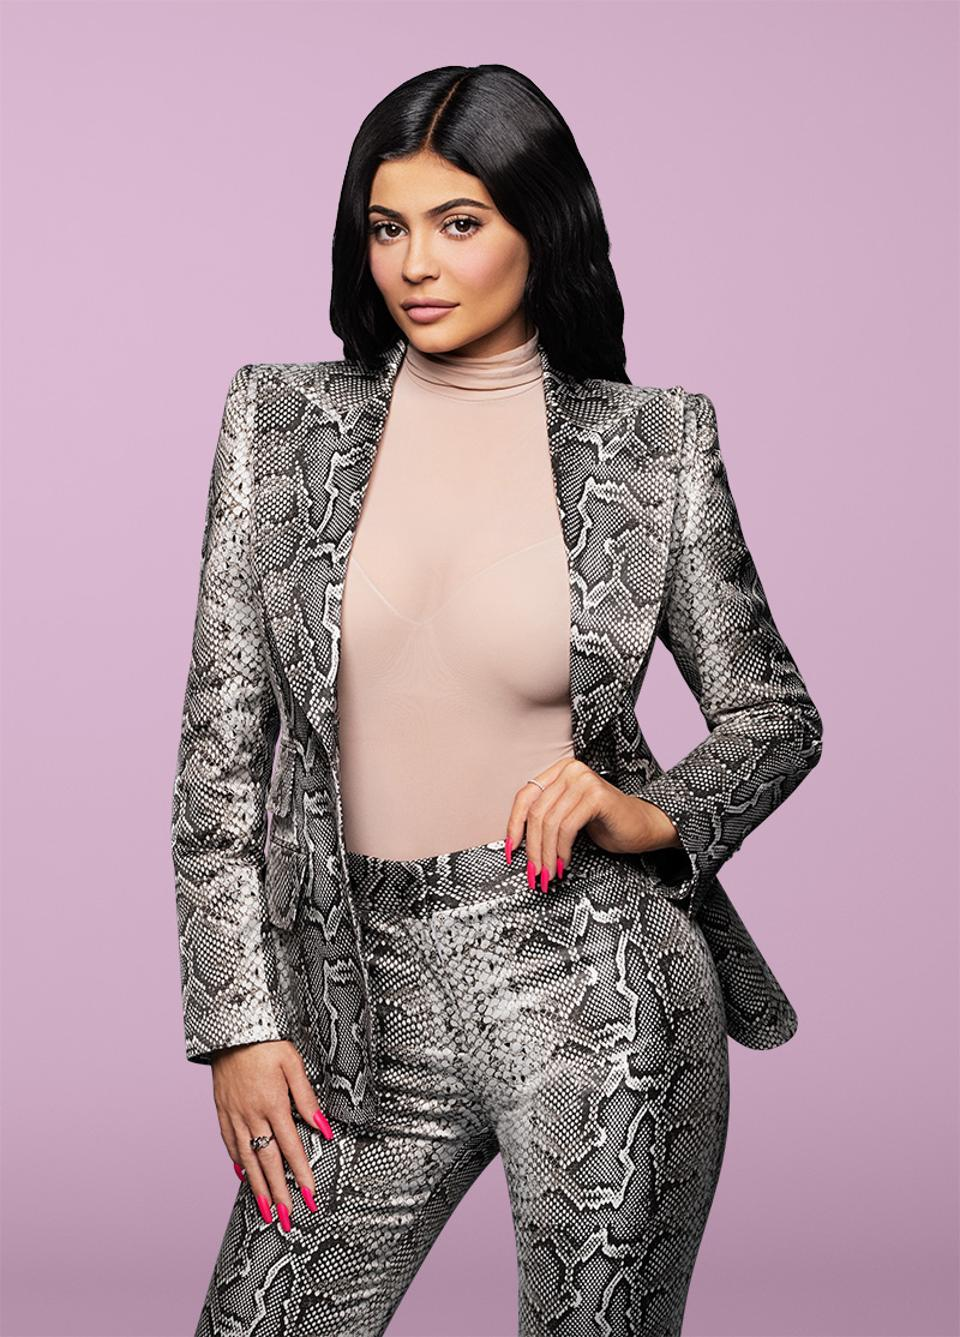 Kylie-Jenner-youngest-billionaire-.jpg